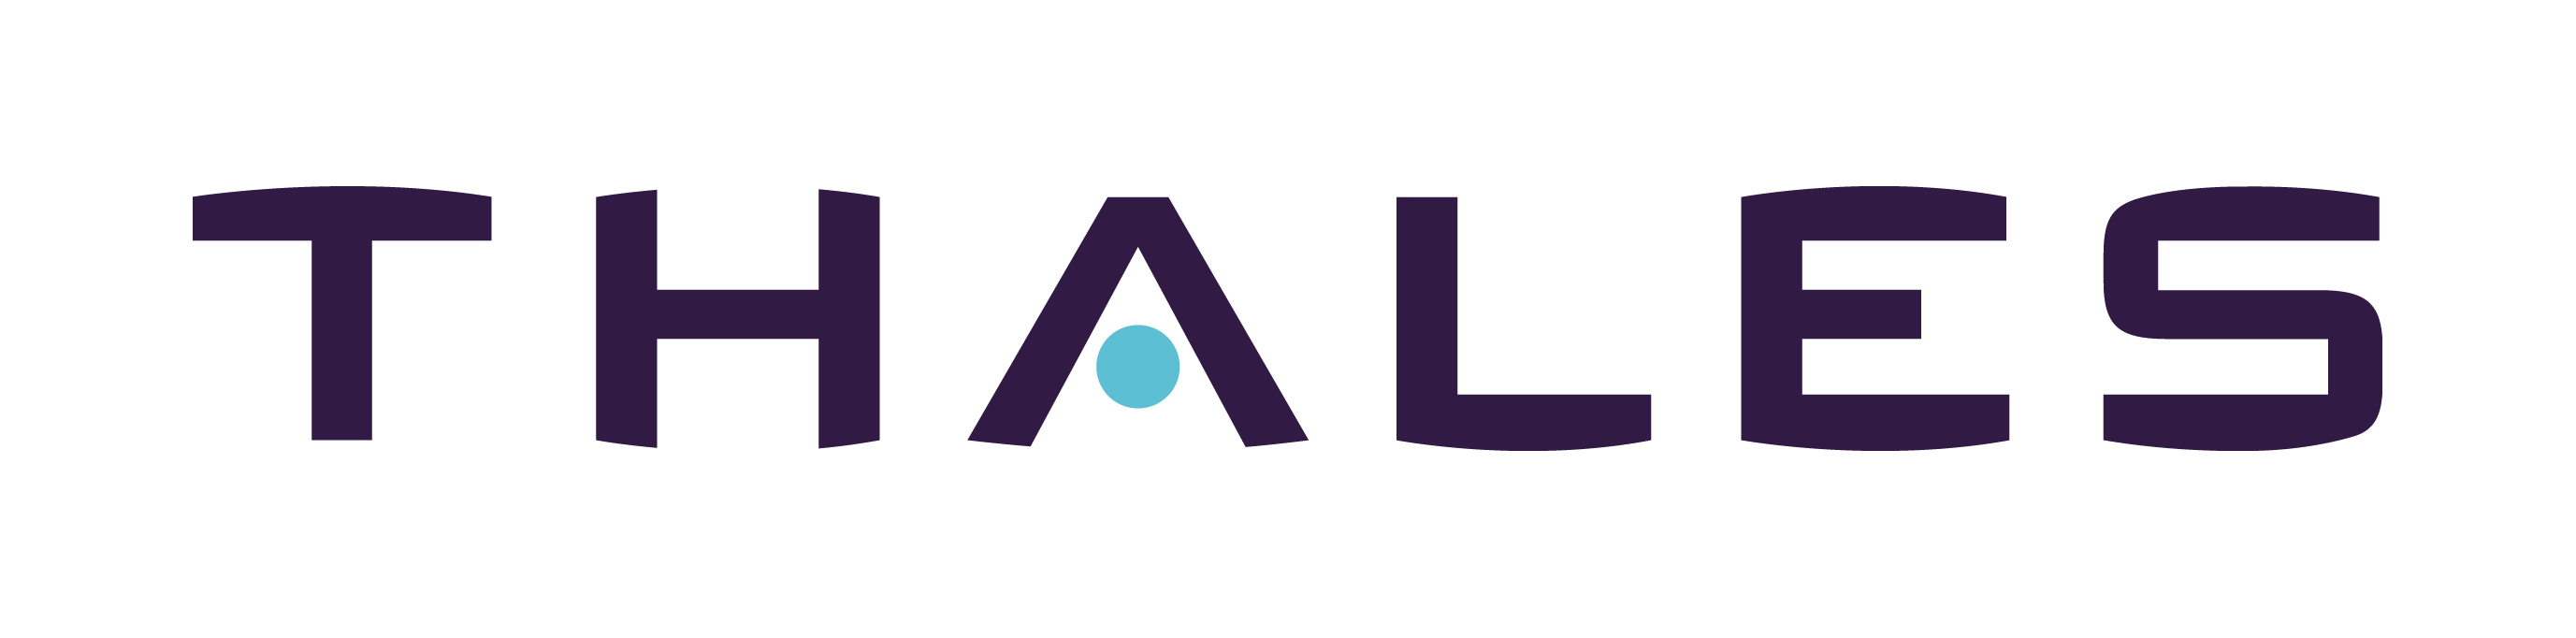 diagram 1 logo Thales quadri